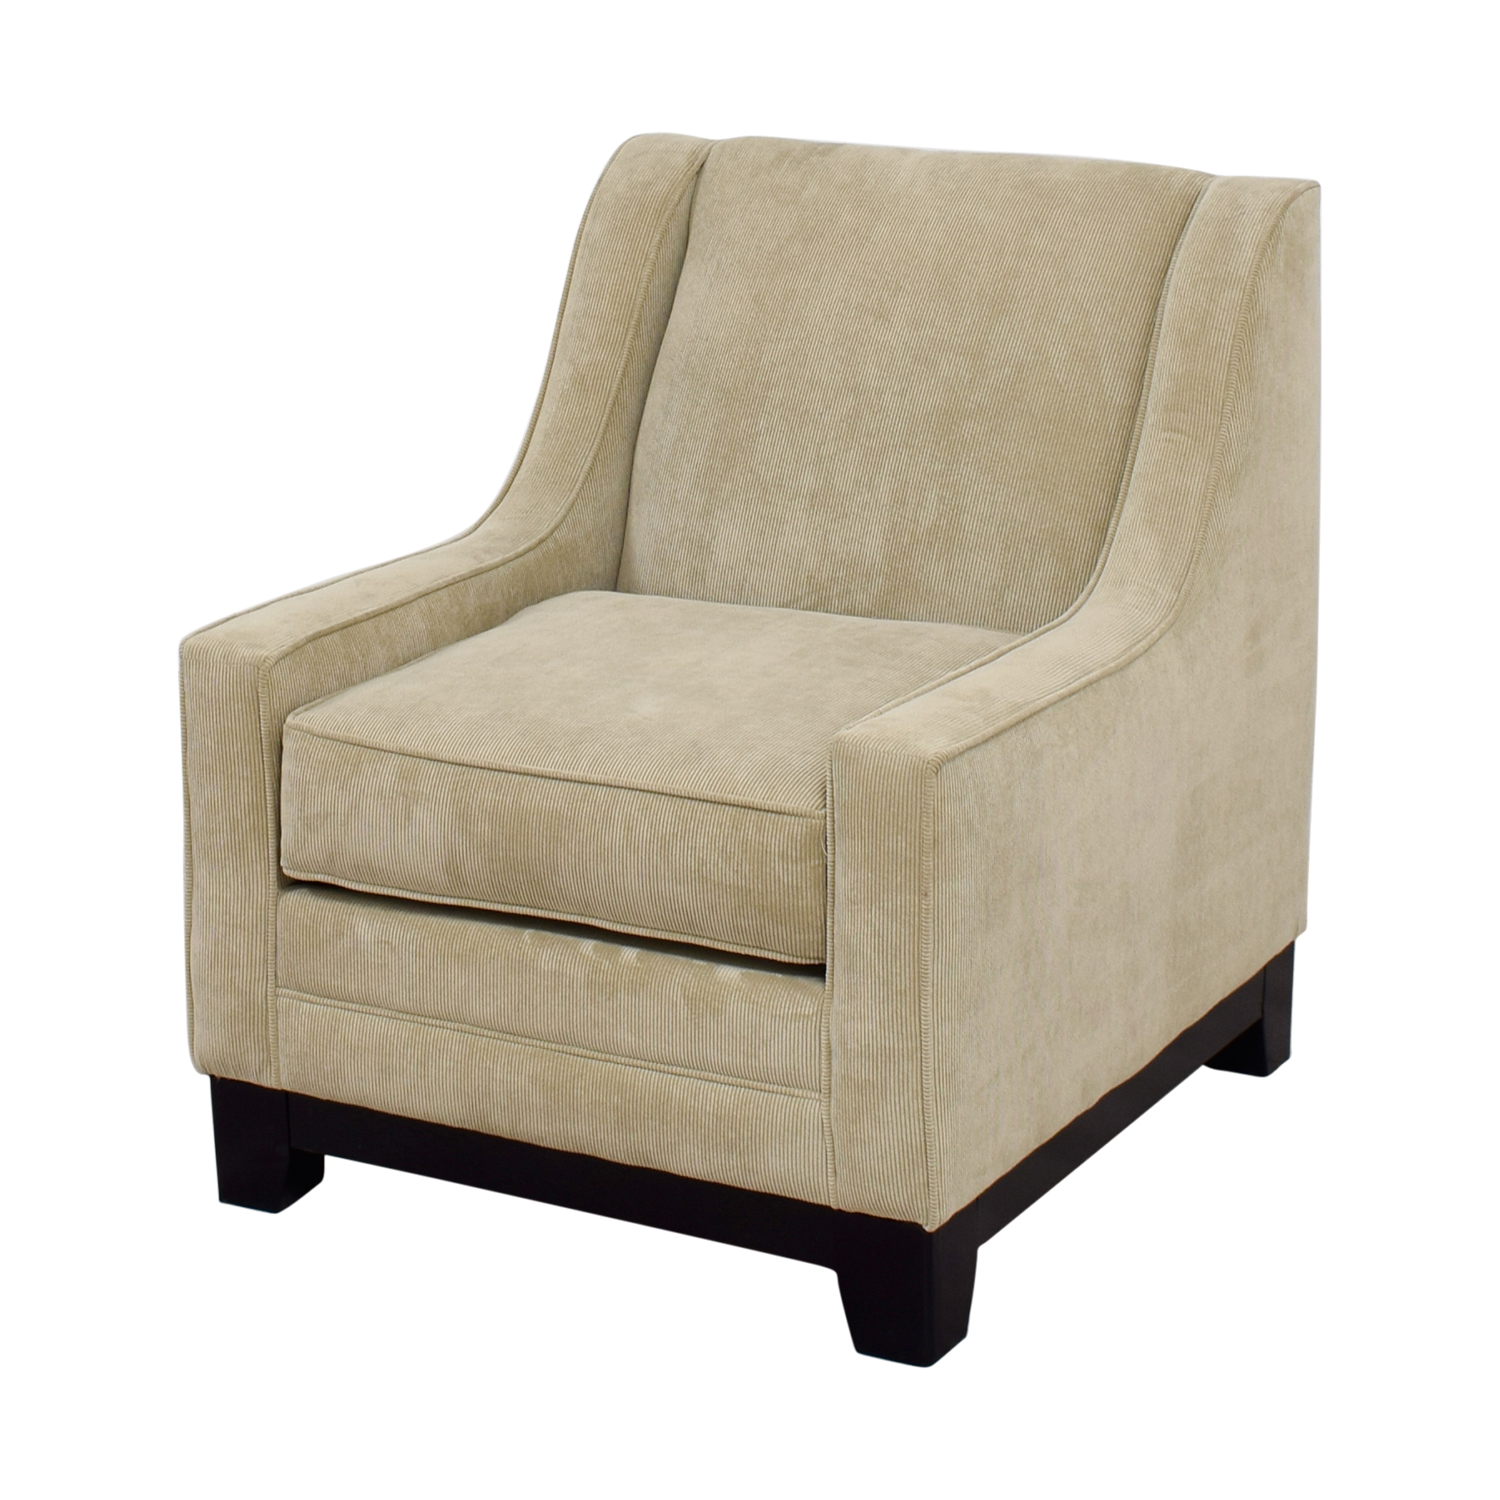 ... May Furniture Tan Corduroy Accent Chair / Chairs ...